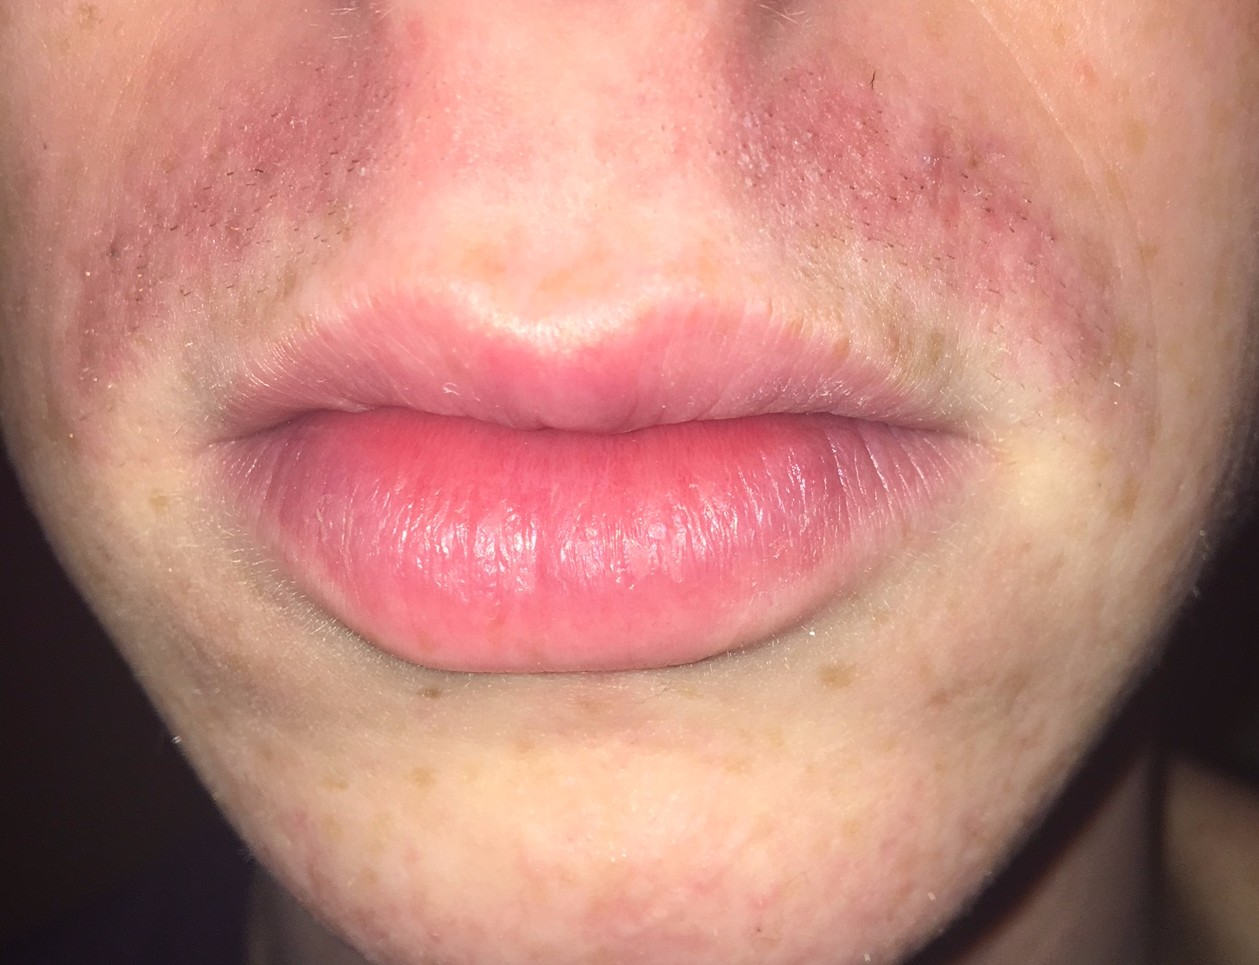 Pimples On Upper Lip After Shaving Decorativestyle Org